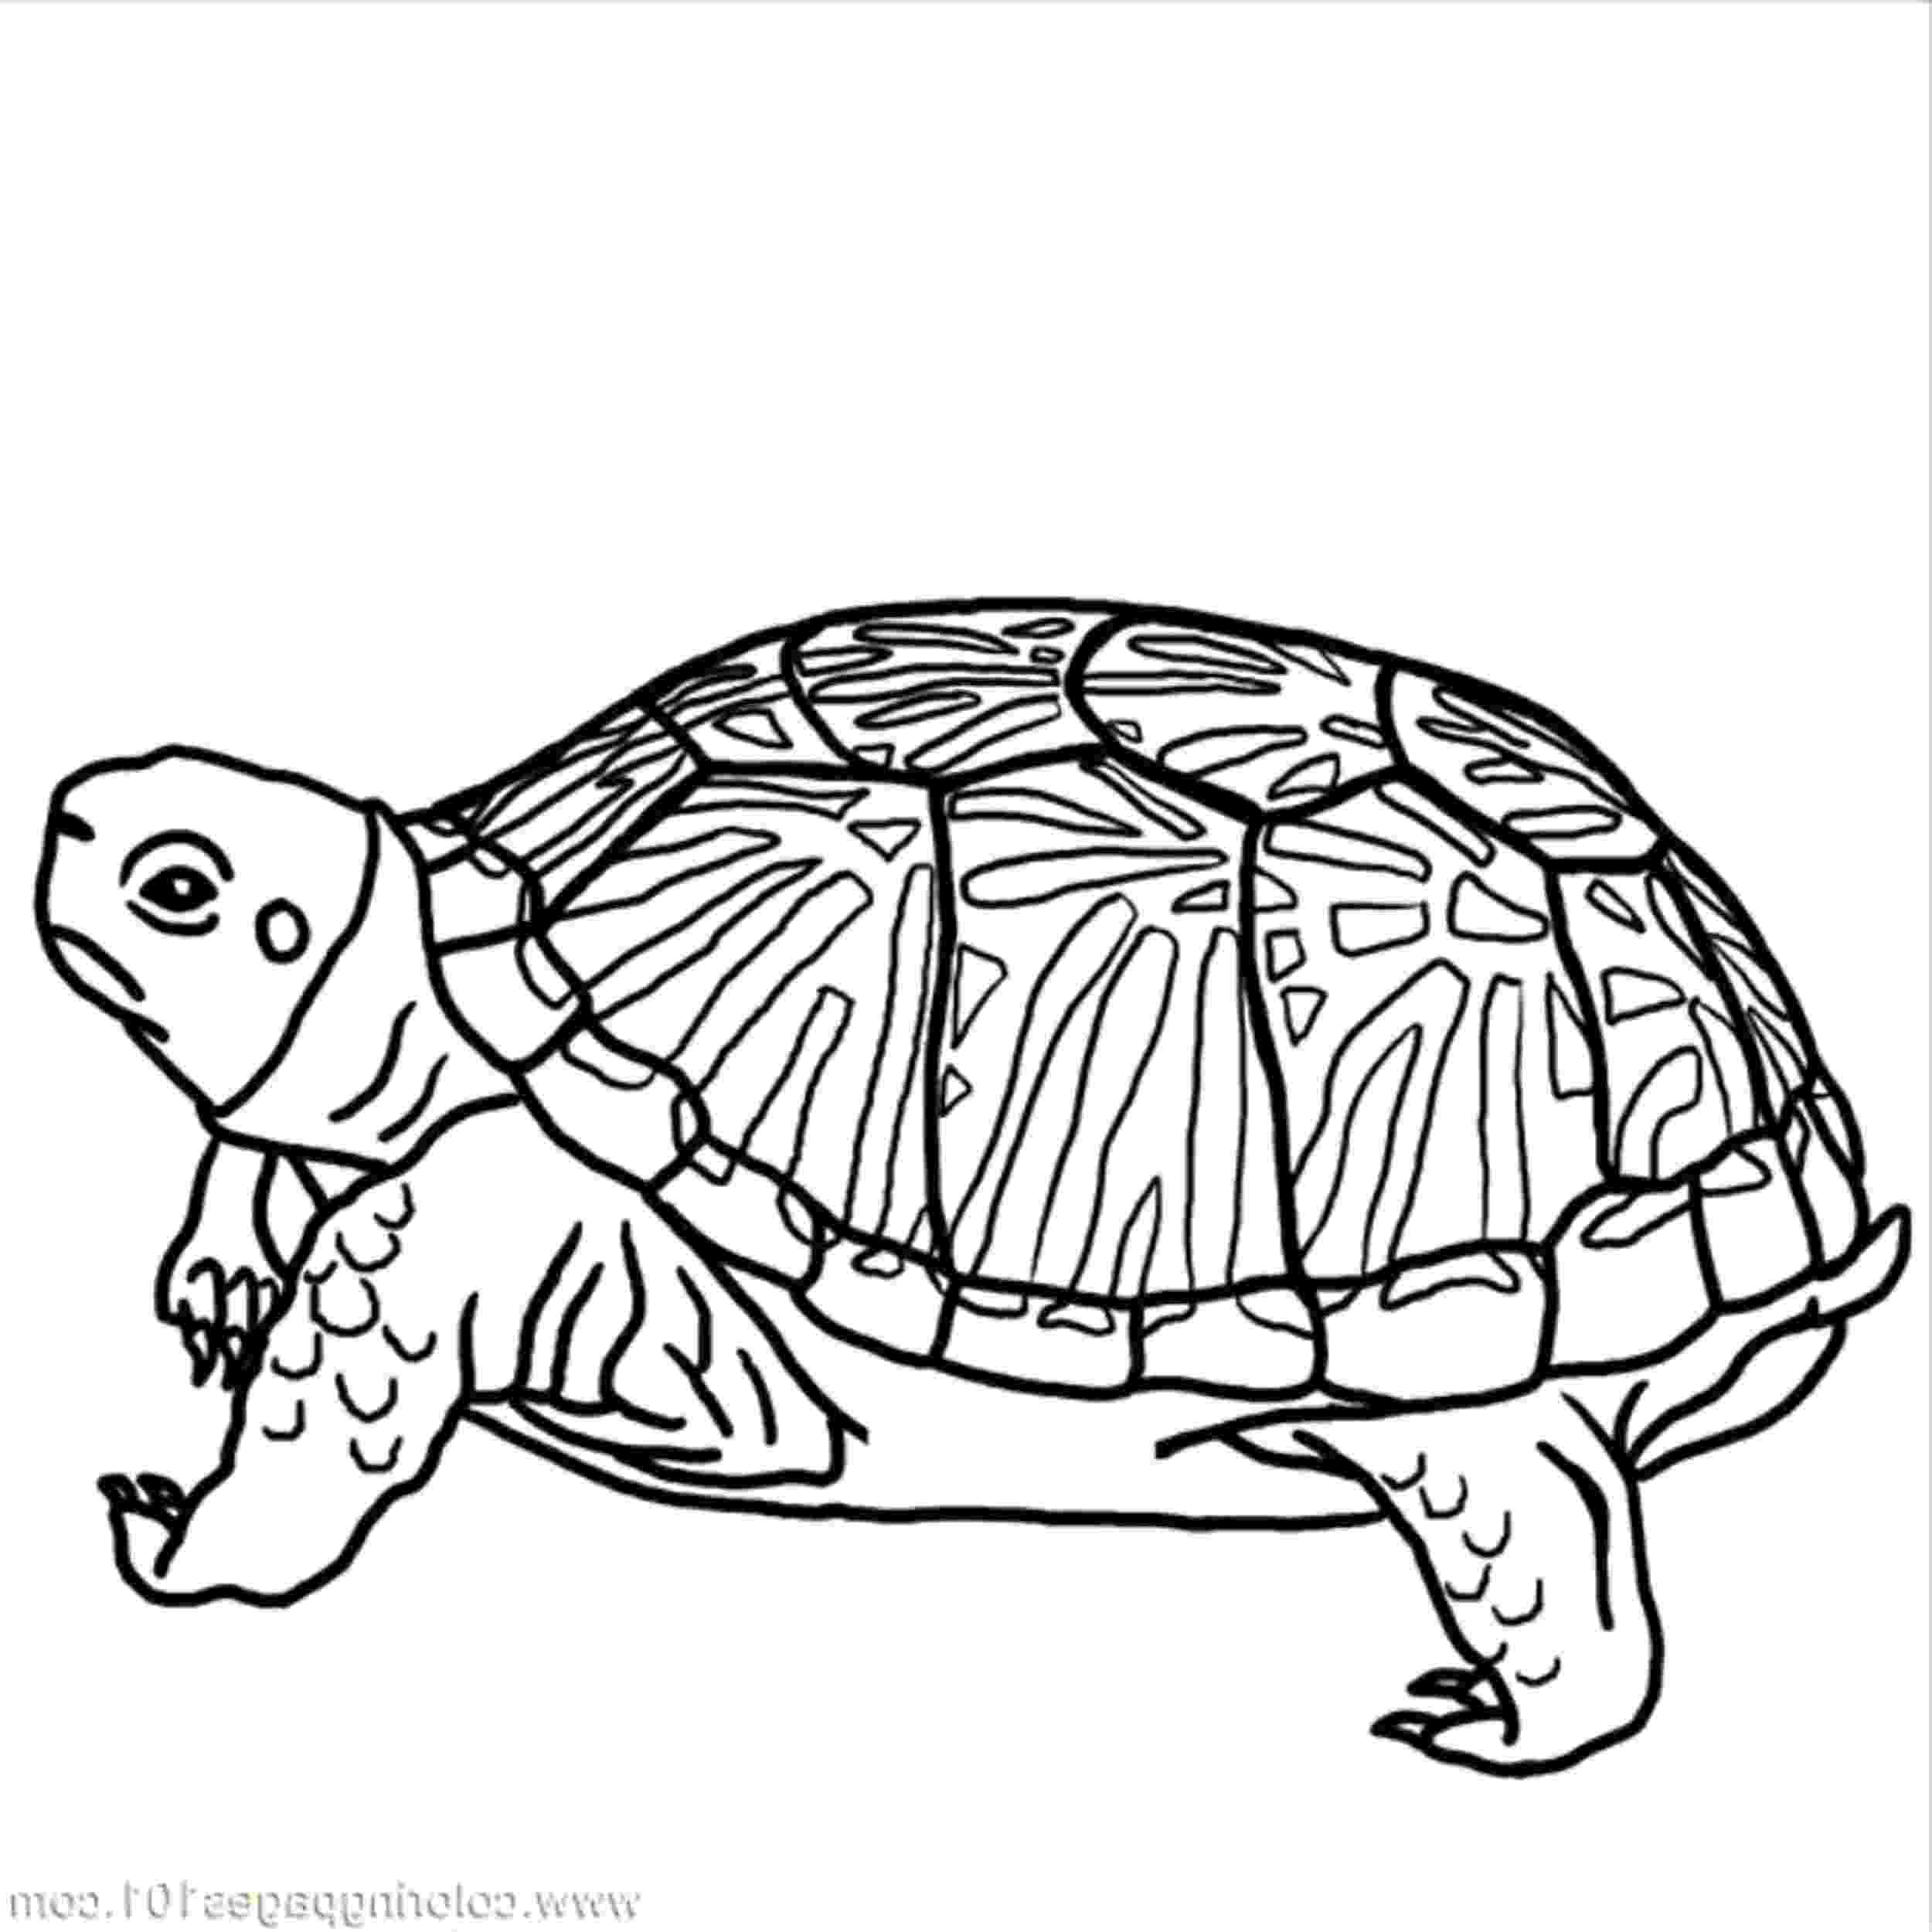 coloring pictures of turtles teenage mutant ninja turtles coloring pages best turtles pictures of coloring